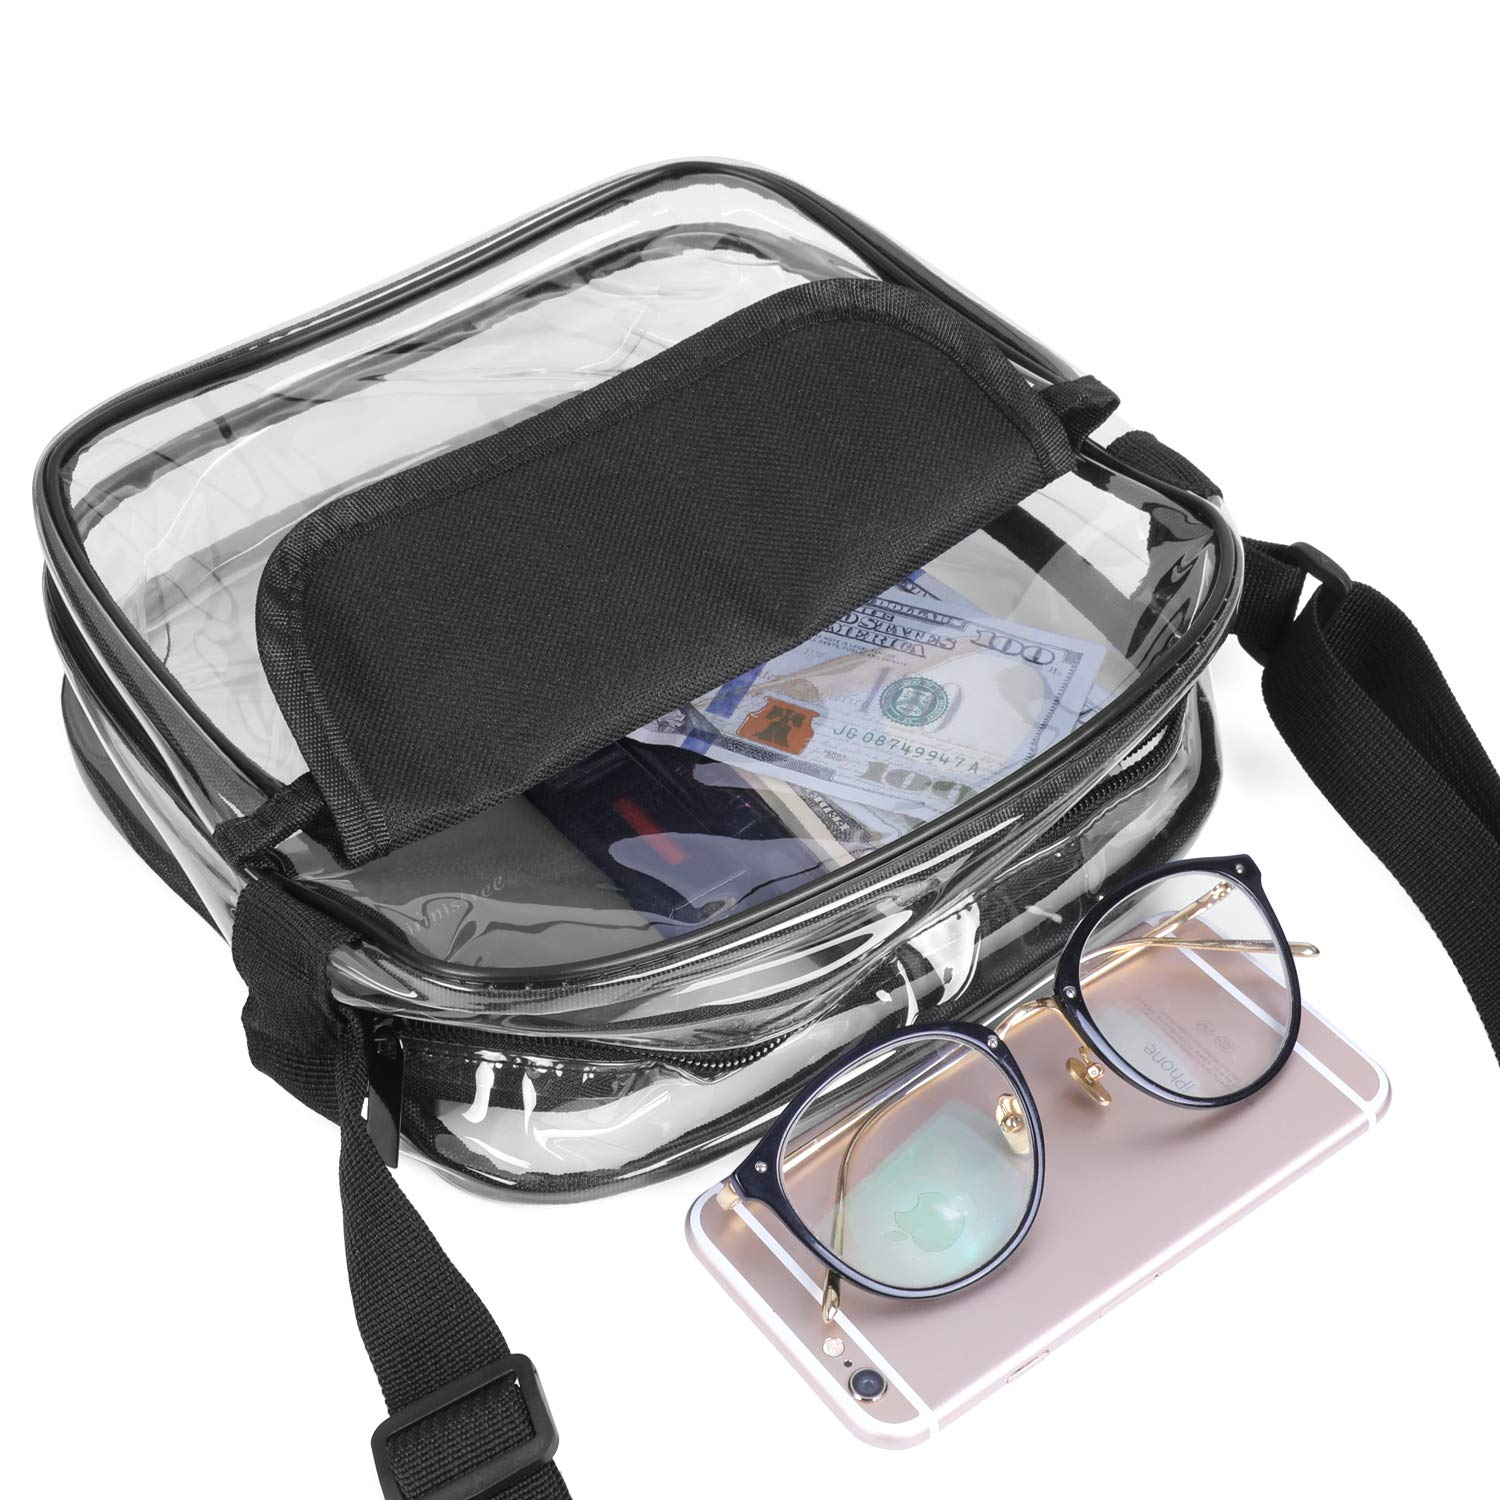 XquiziFit Clear Crossbody Bag NFL Stadium Approved Clear Bag with Adjustable Shoulder Strap and Wrist Strap for Work, Sports Games and Concert